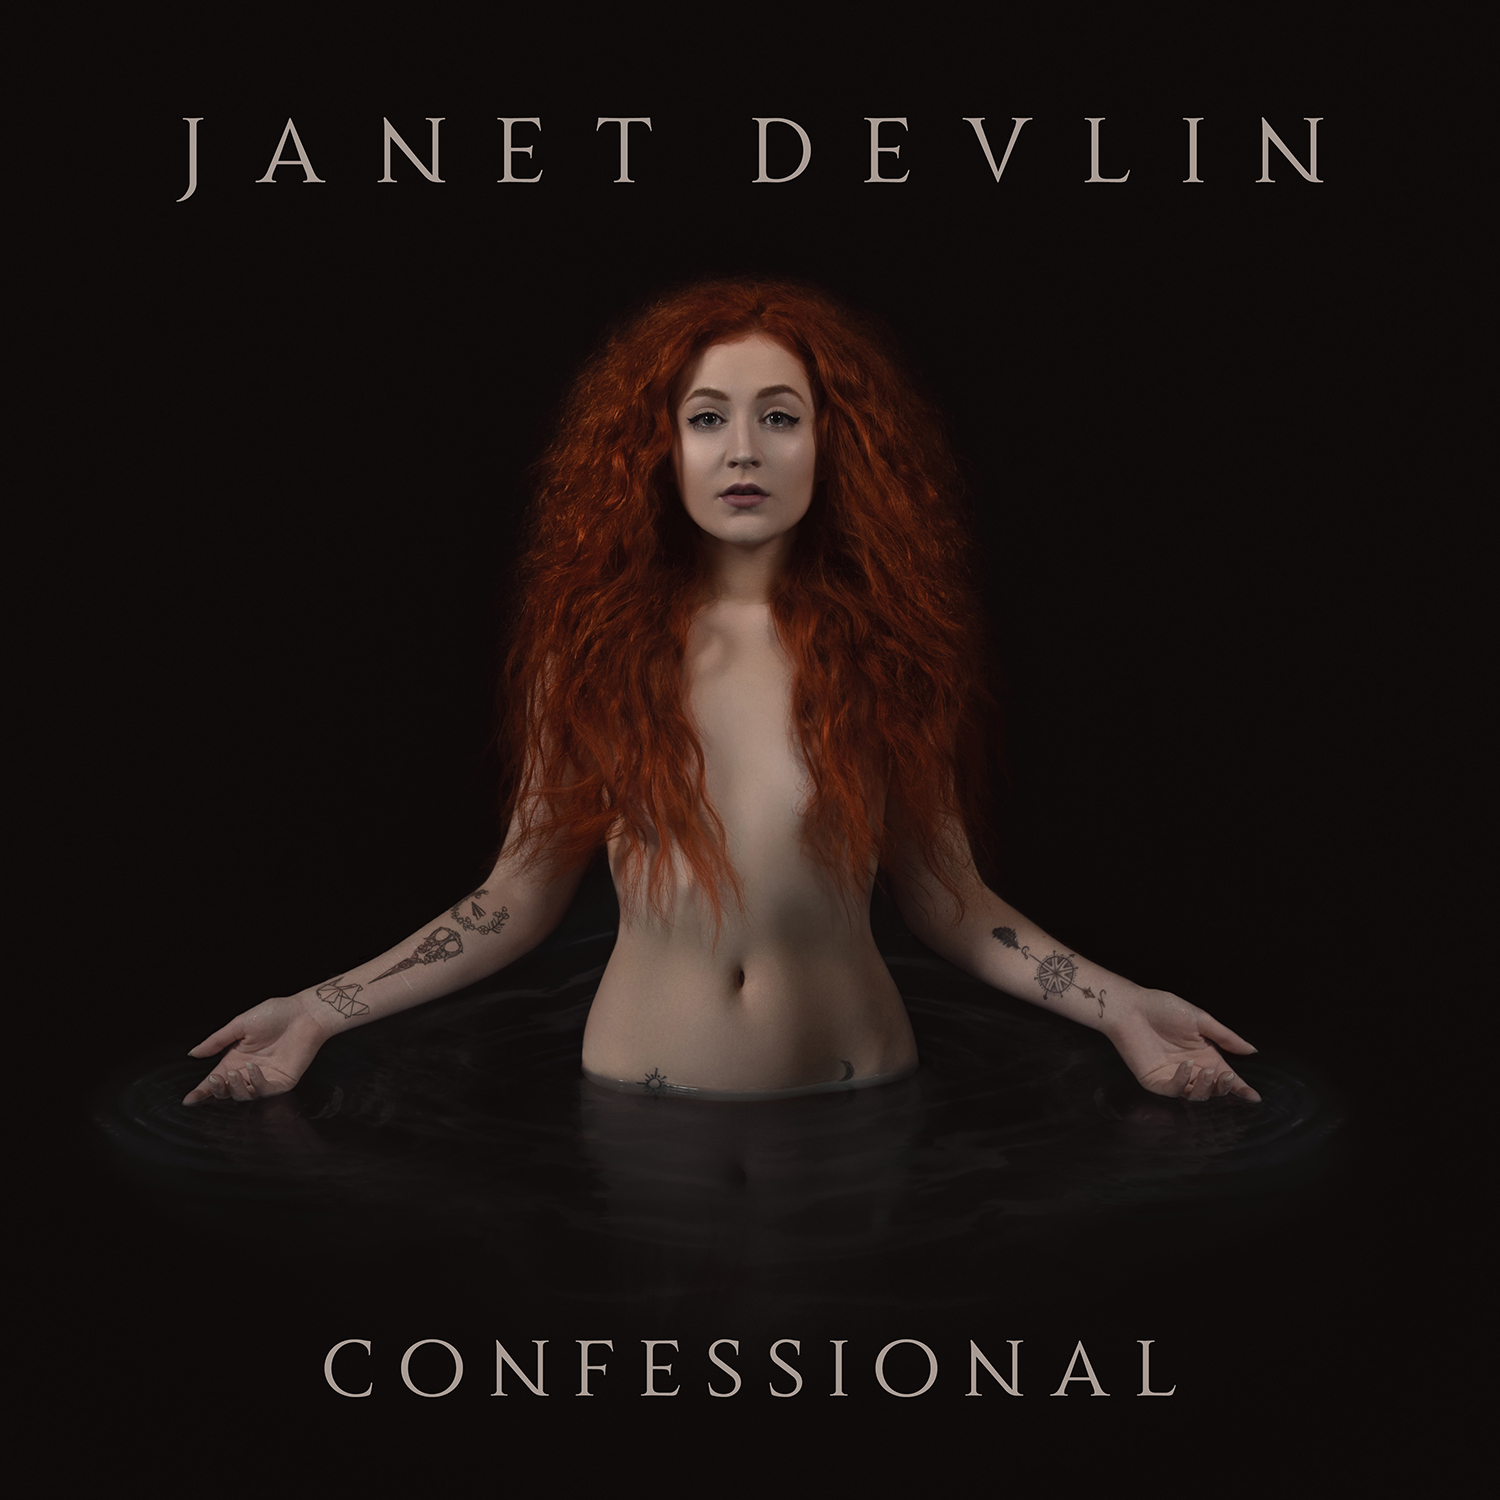 JANET DEVLIN – Confessional CD